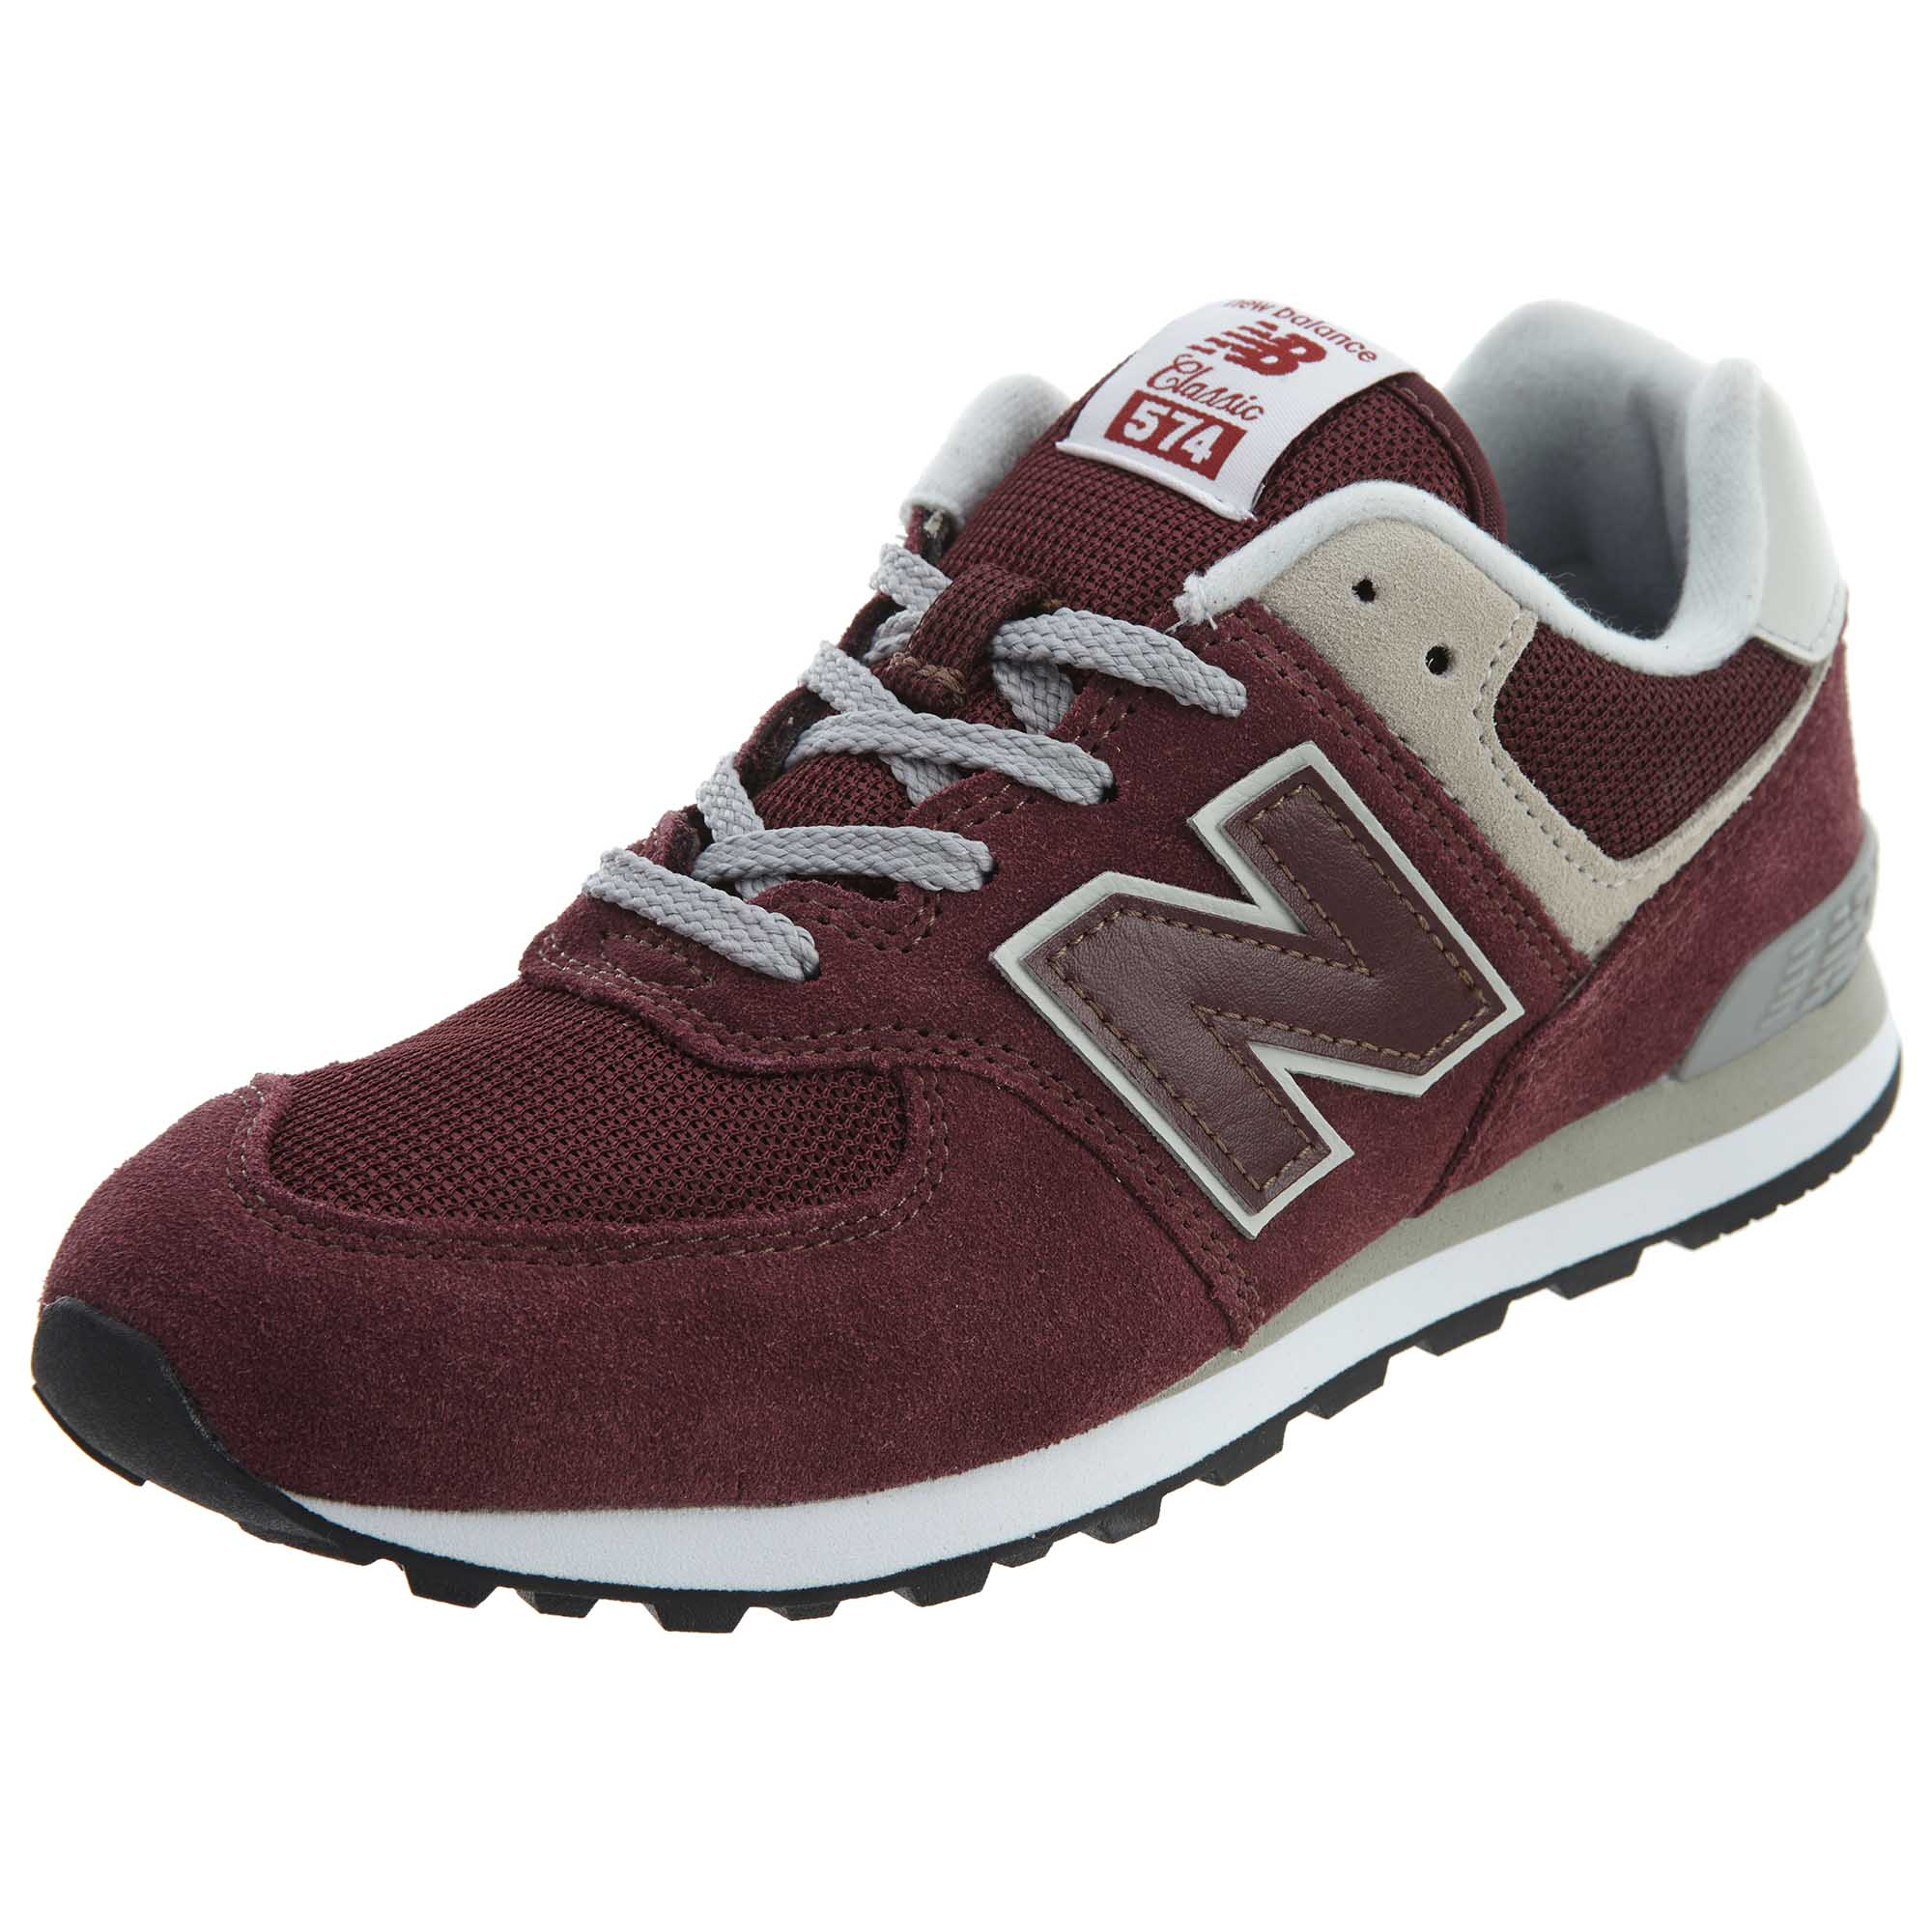 69bc2aa88e4 Details about New Balance Big Kids 574 Life Style Shoes Burgundy White GC574 -GB